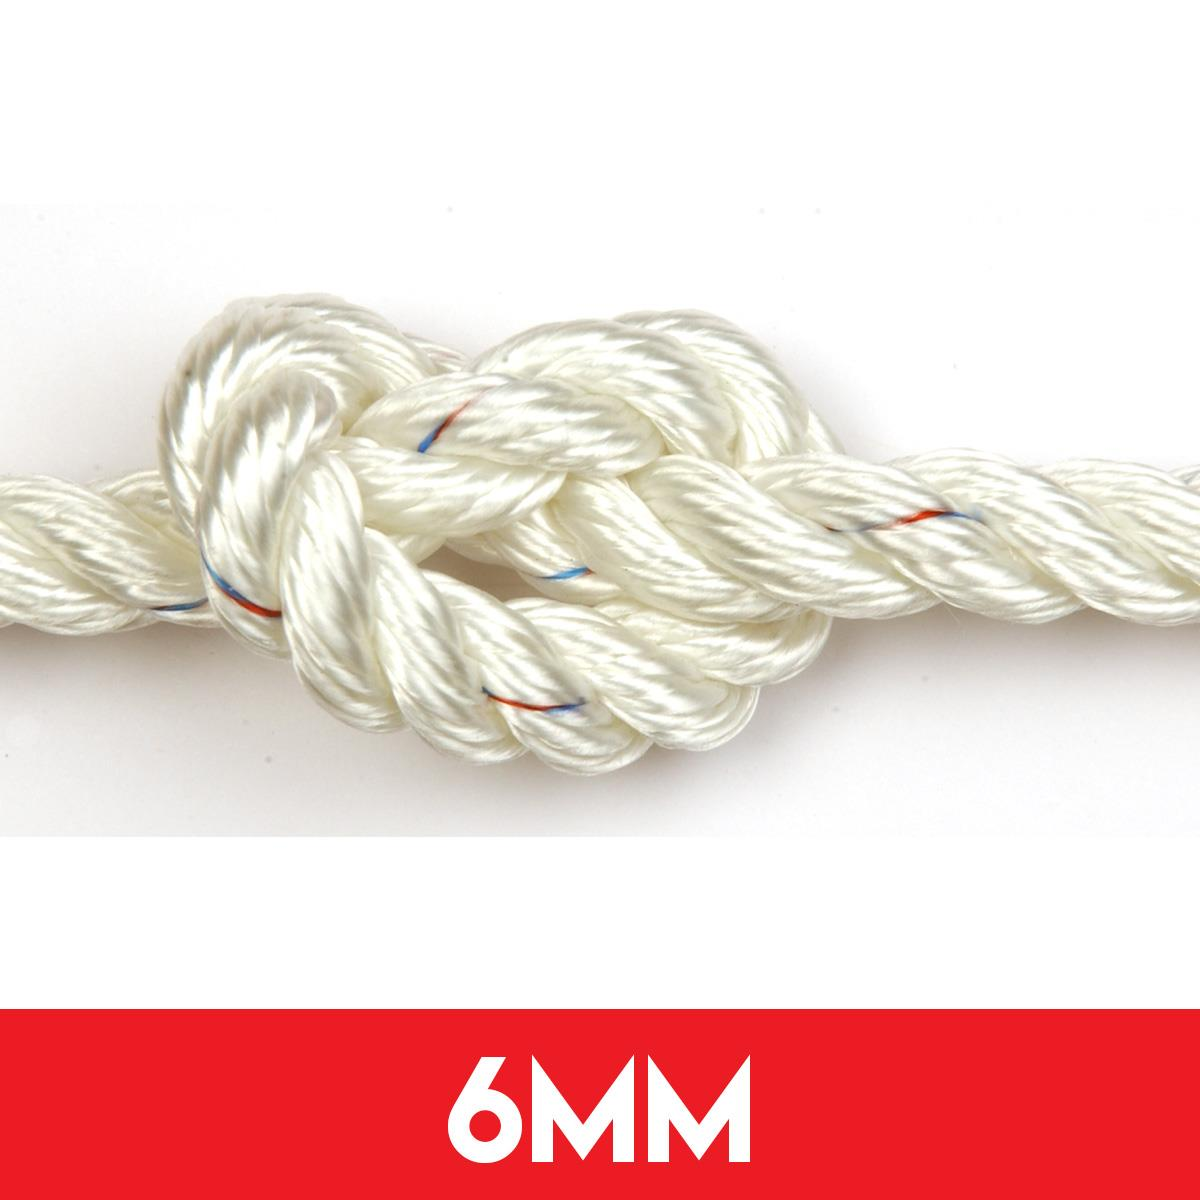 6mm 3 Strand Polyester Rope